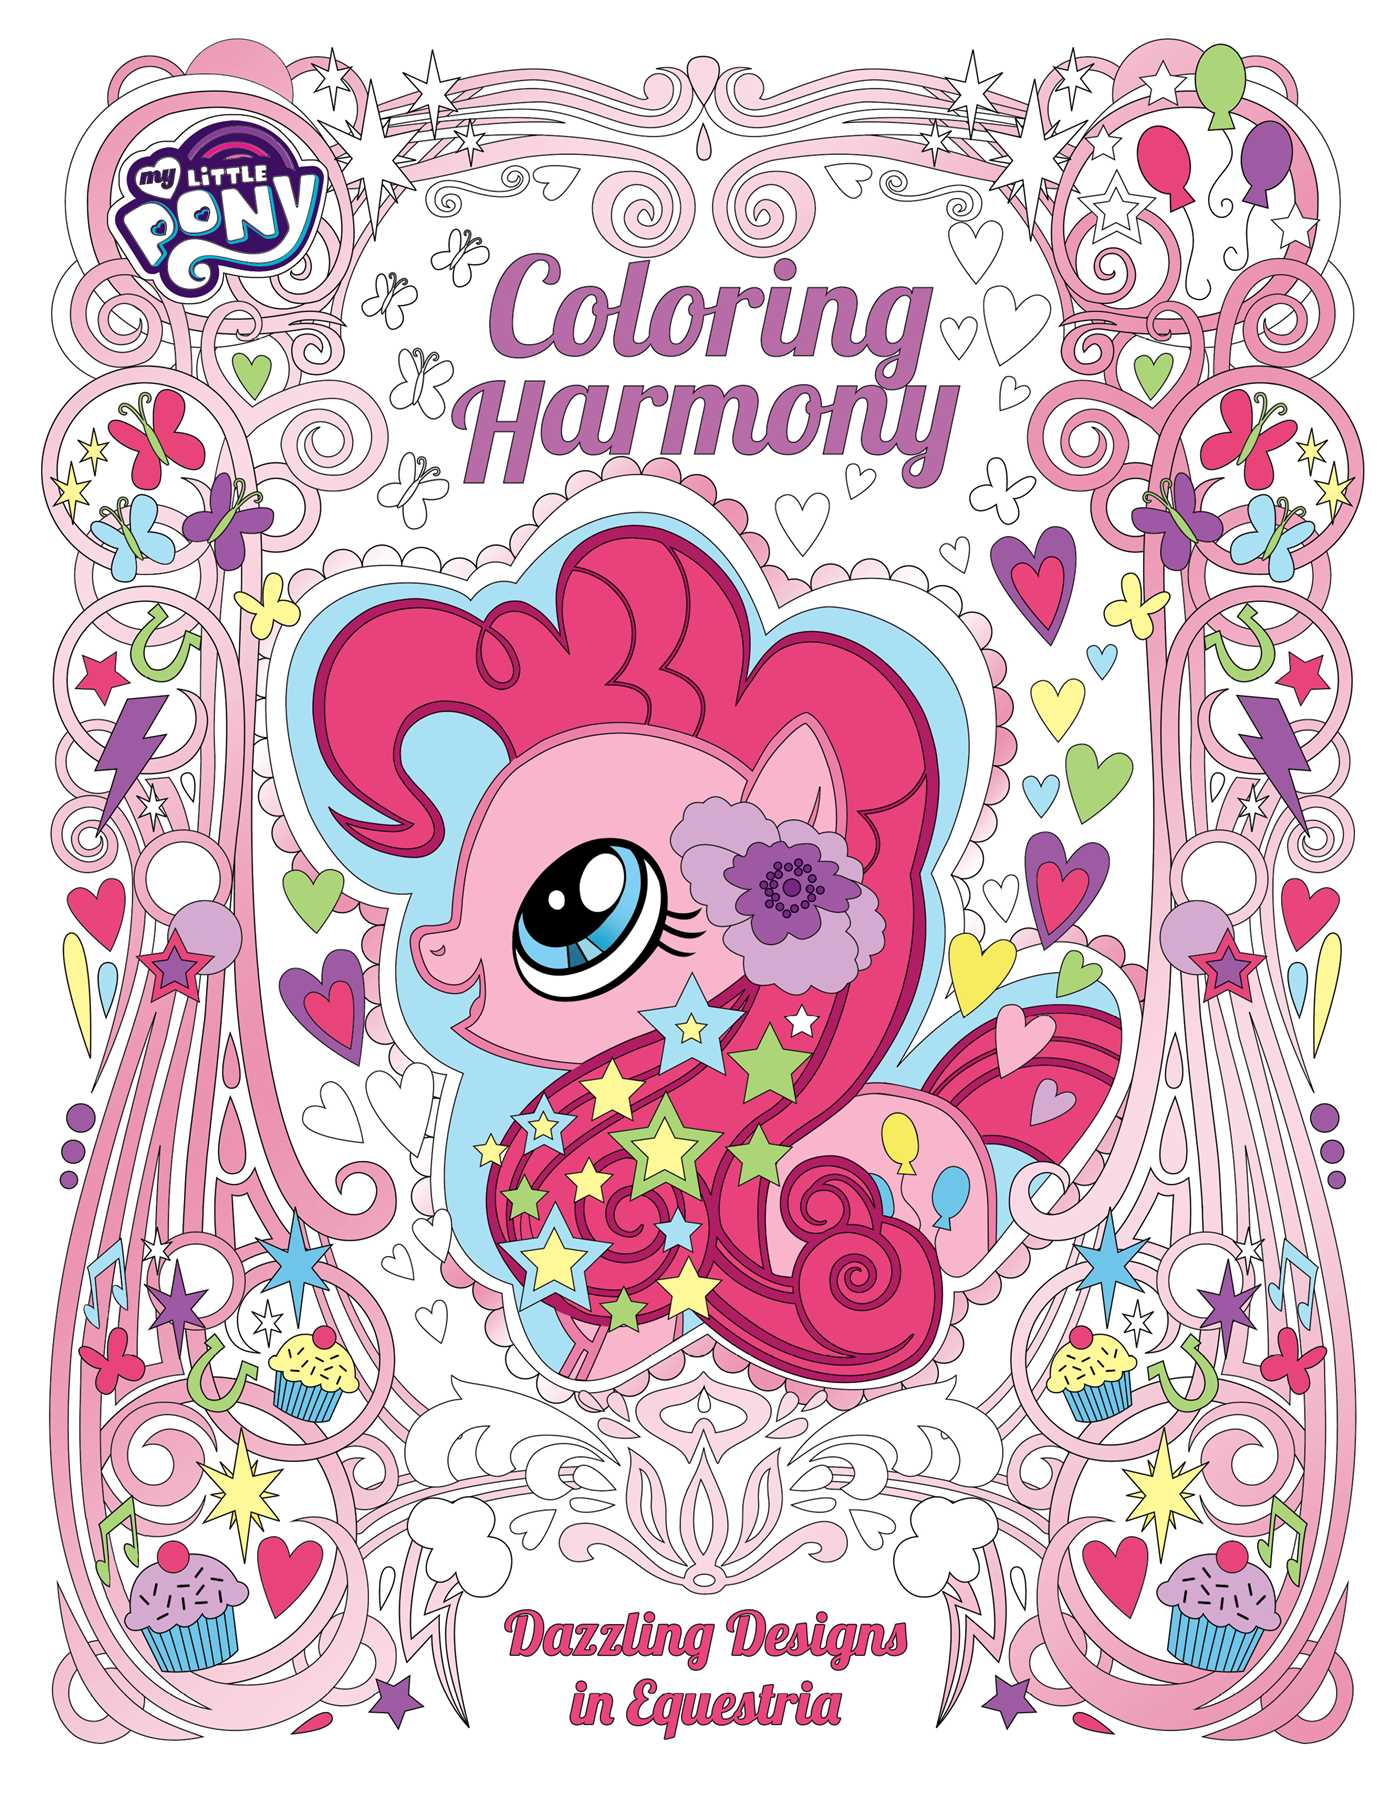 my little pony coloring harmony book by robin hoffman